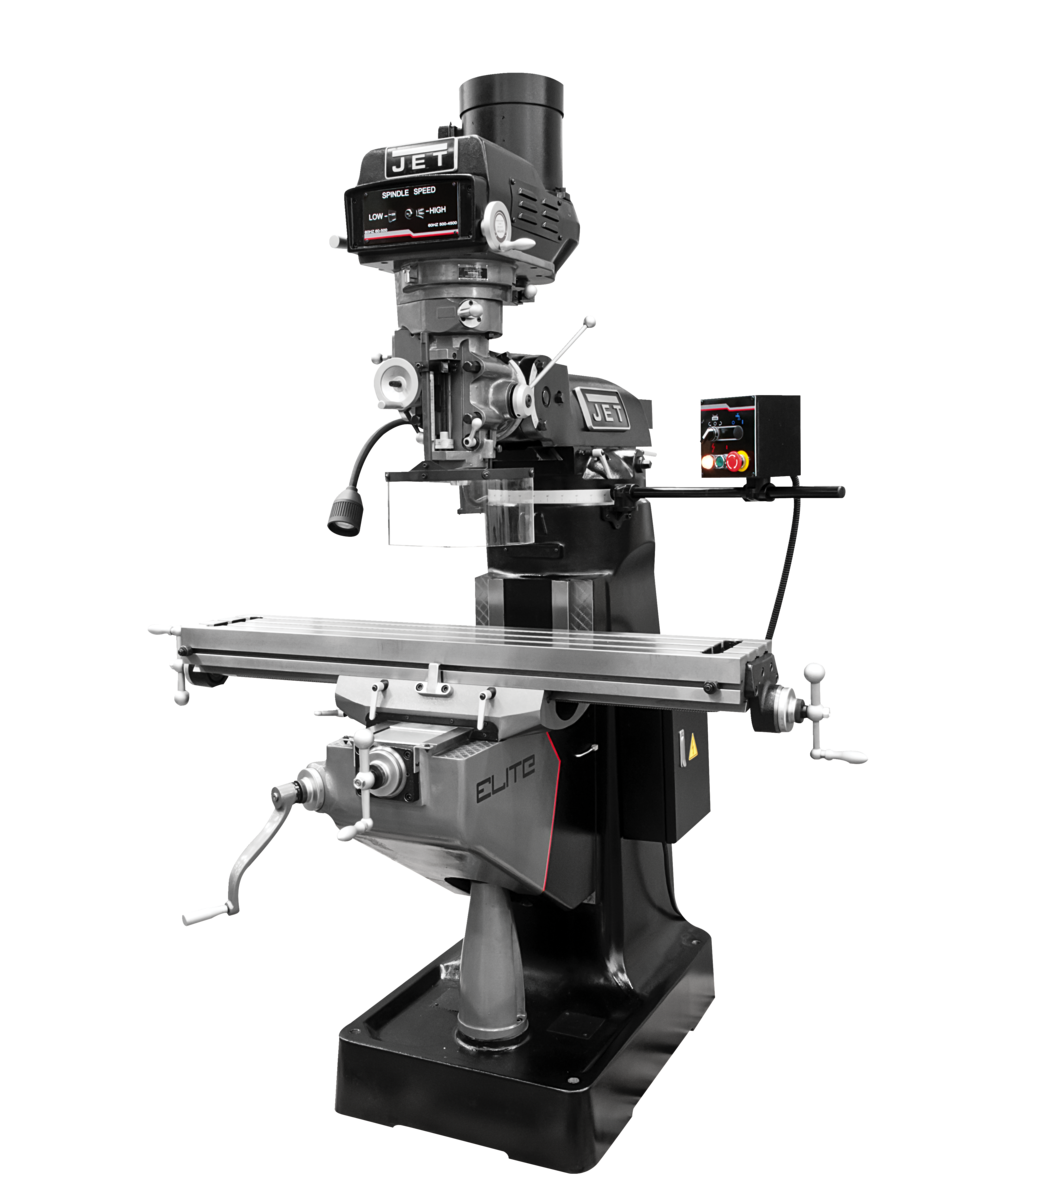 ETM-949 Mill with 3-Axis ACU-RITE 303  (Quill) DRO